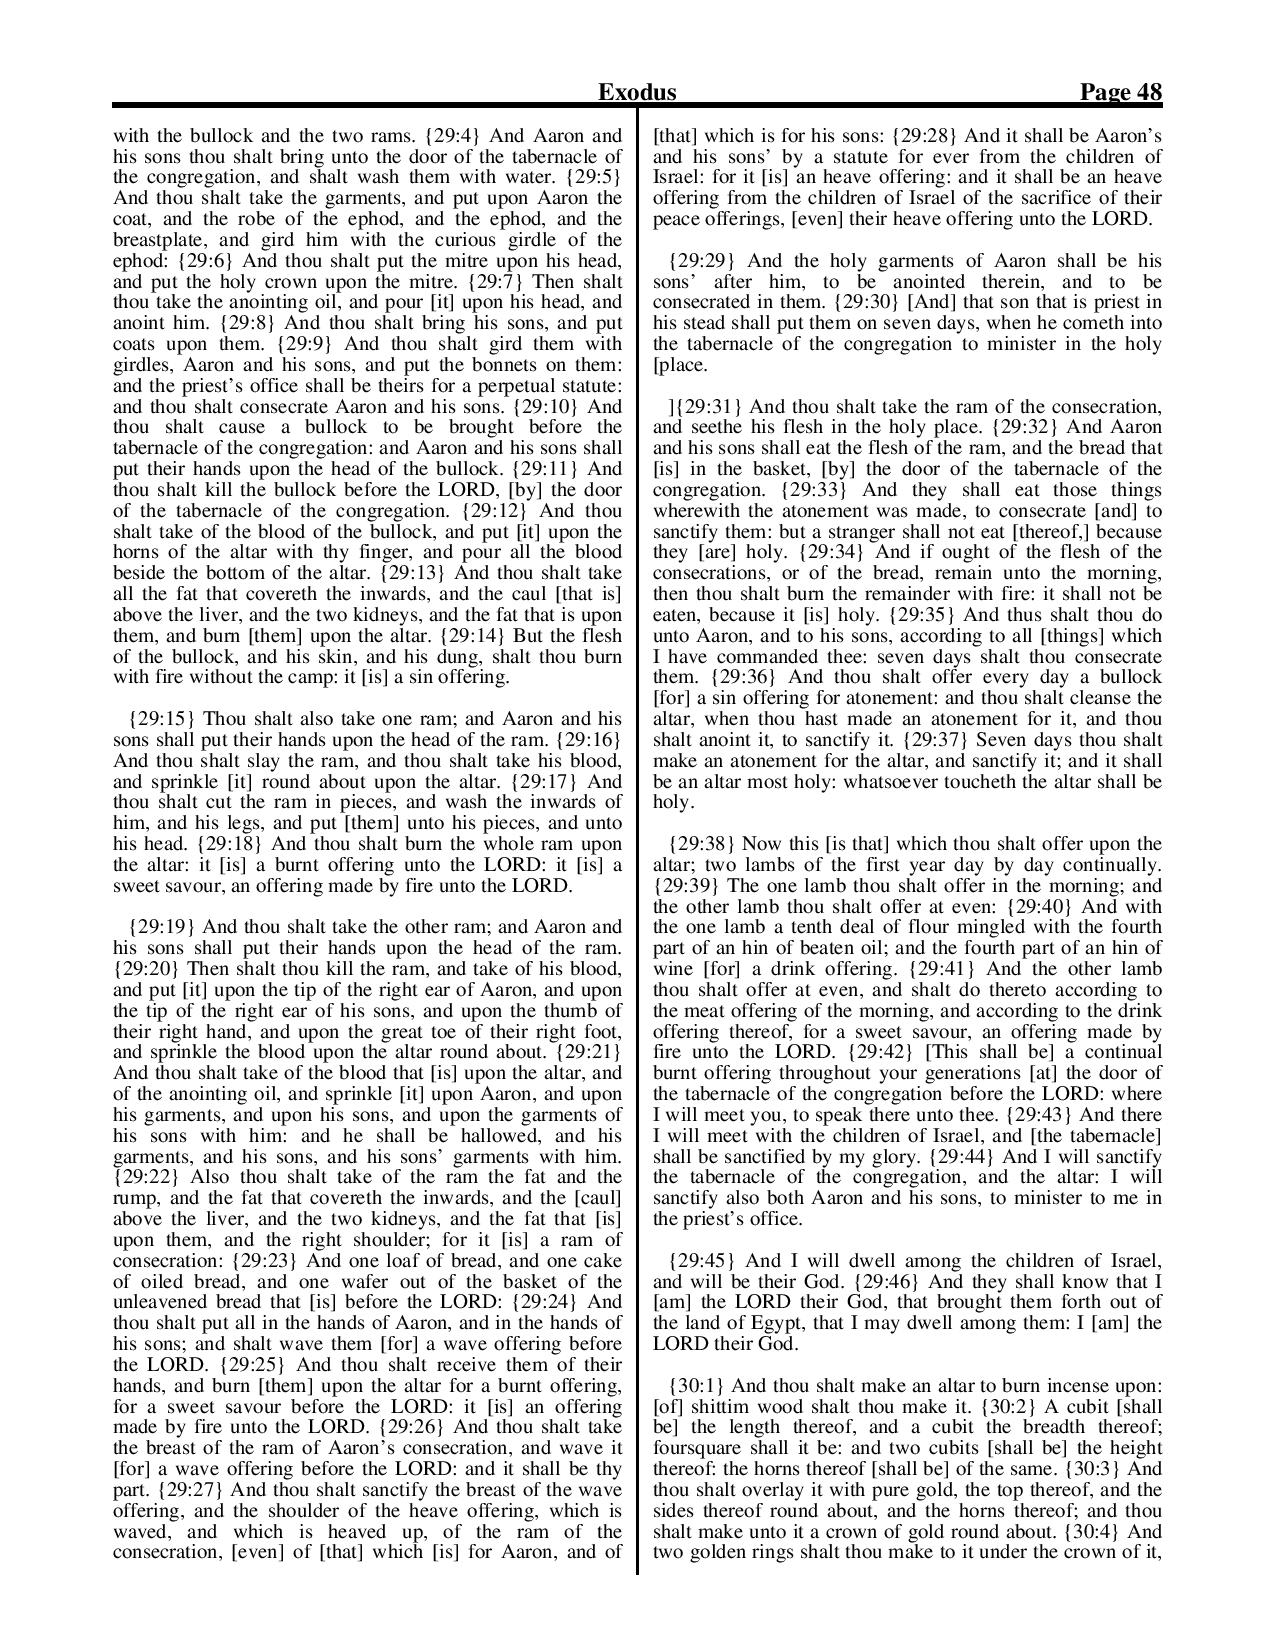 King-James-Bible-KJV-Bible-PDF-page-069